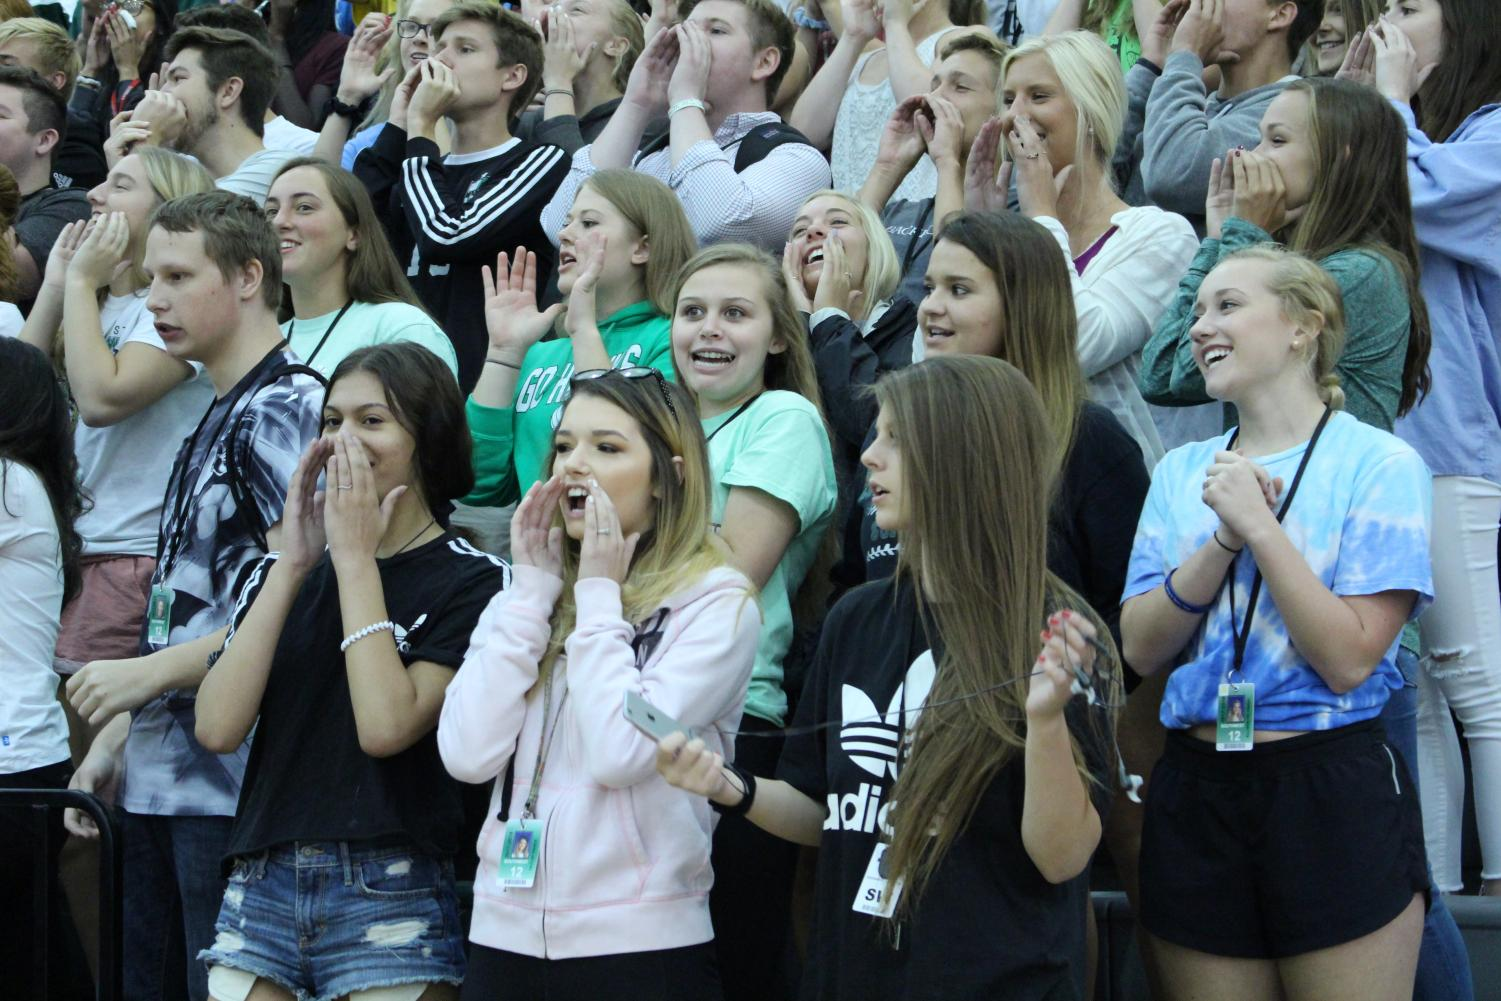 Students cheering during the Homecoming Pep Rally in 2017.